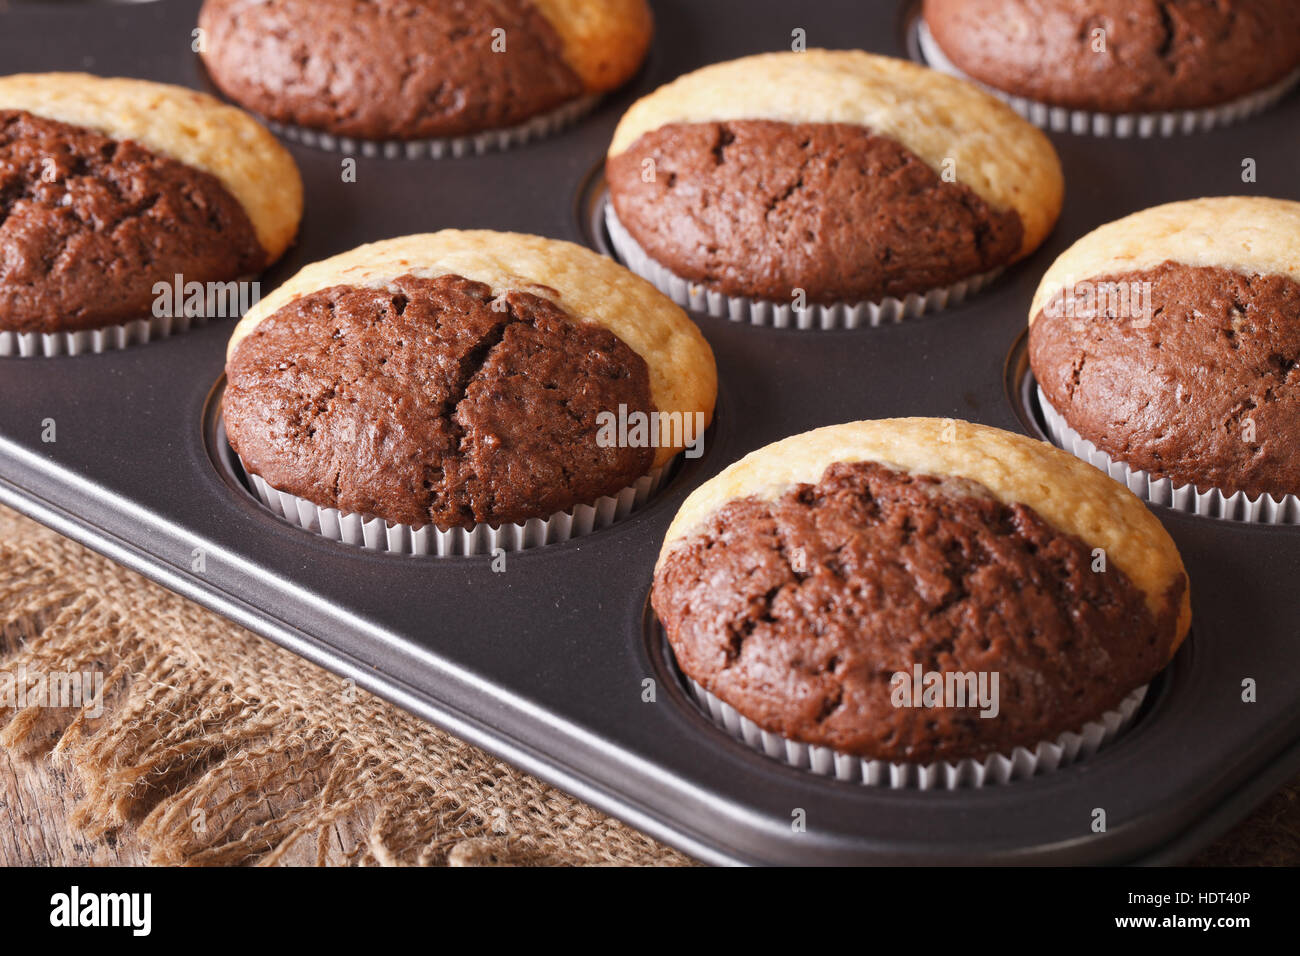 fresh chocolate muffins in baking dish from the oven closeup. Horizontal - Stock Image